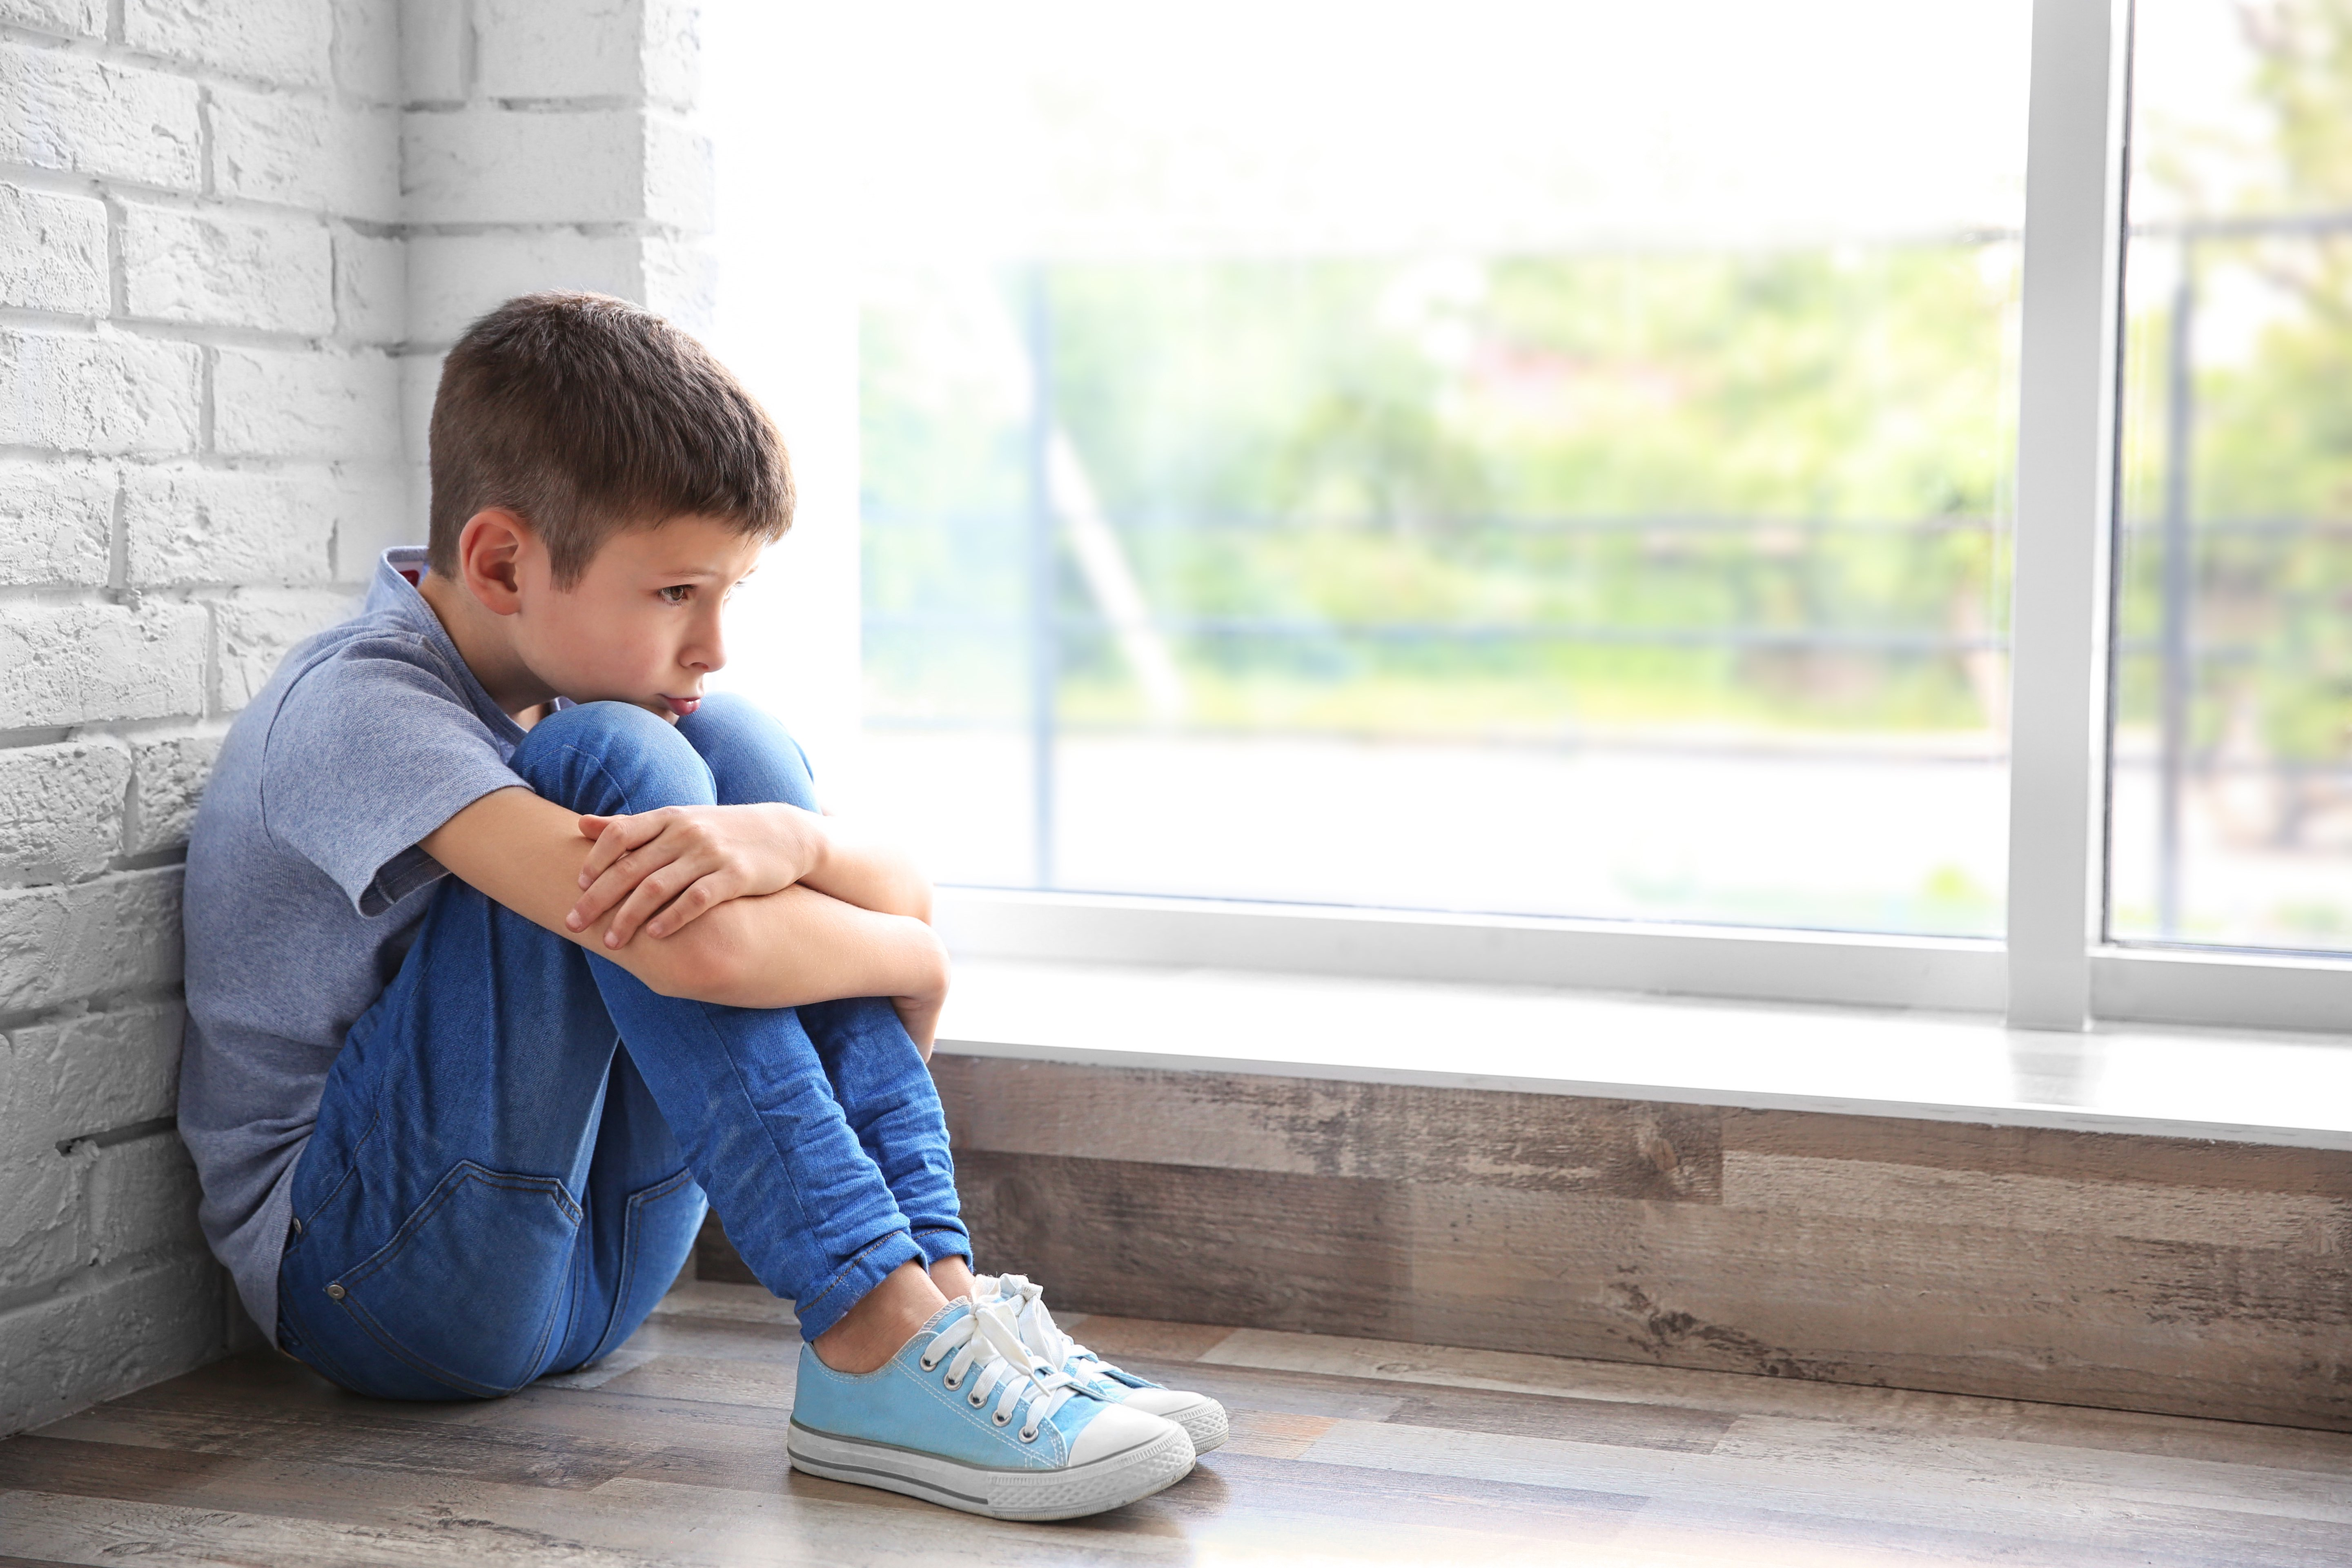 How To Help Keep Children With Autism Safe